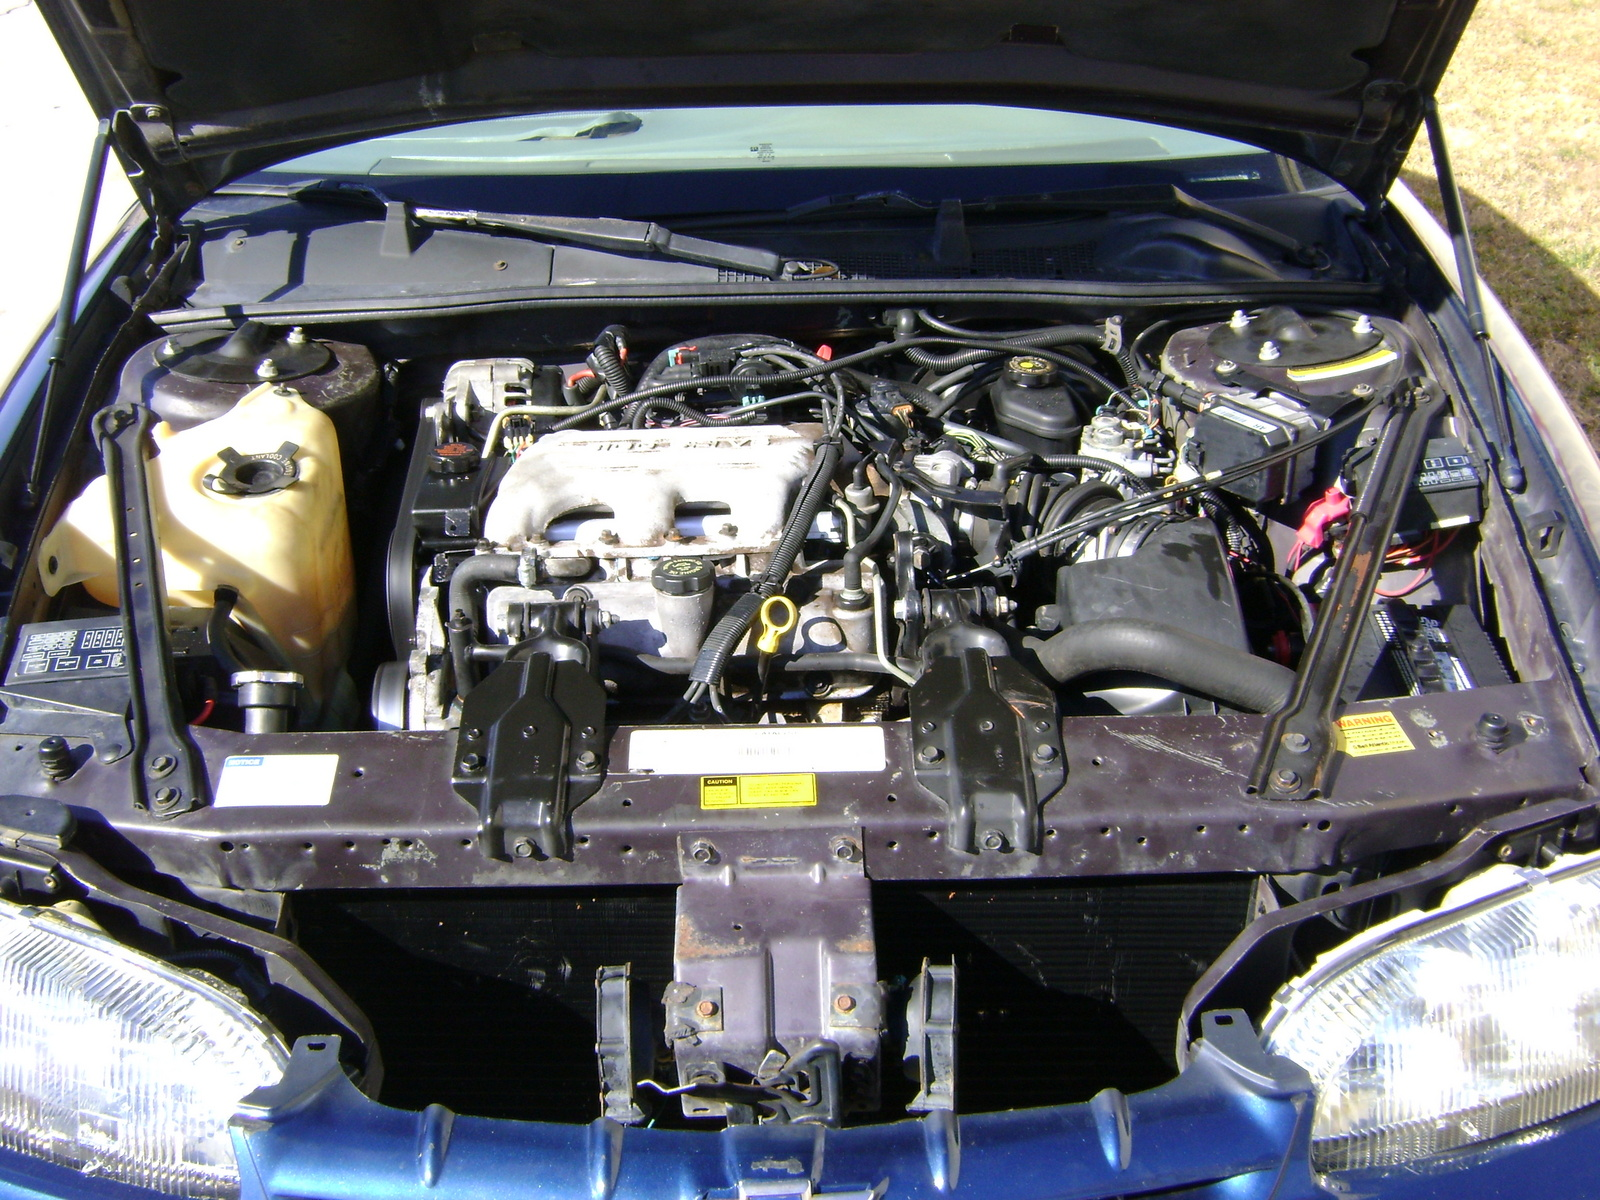 Chevrolet Lumina engine #4